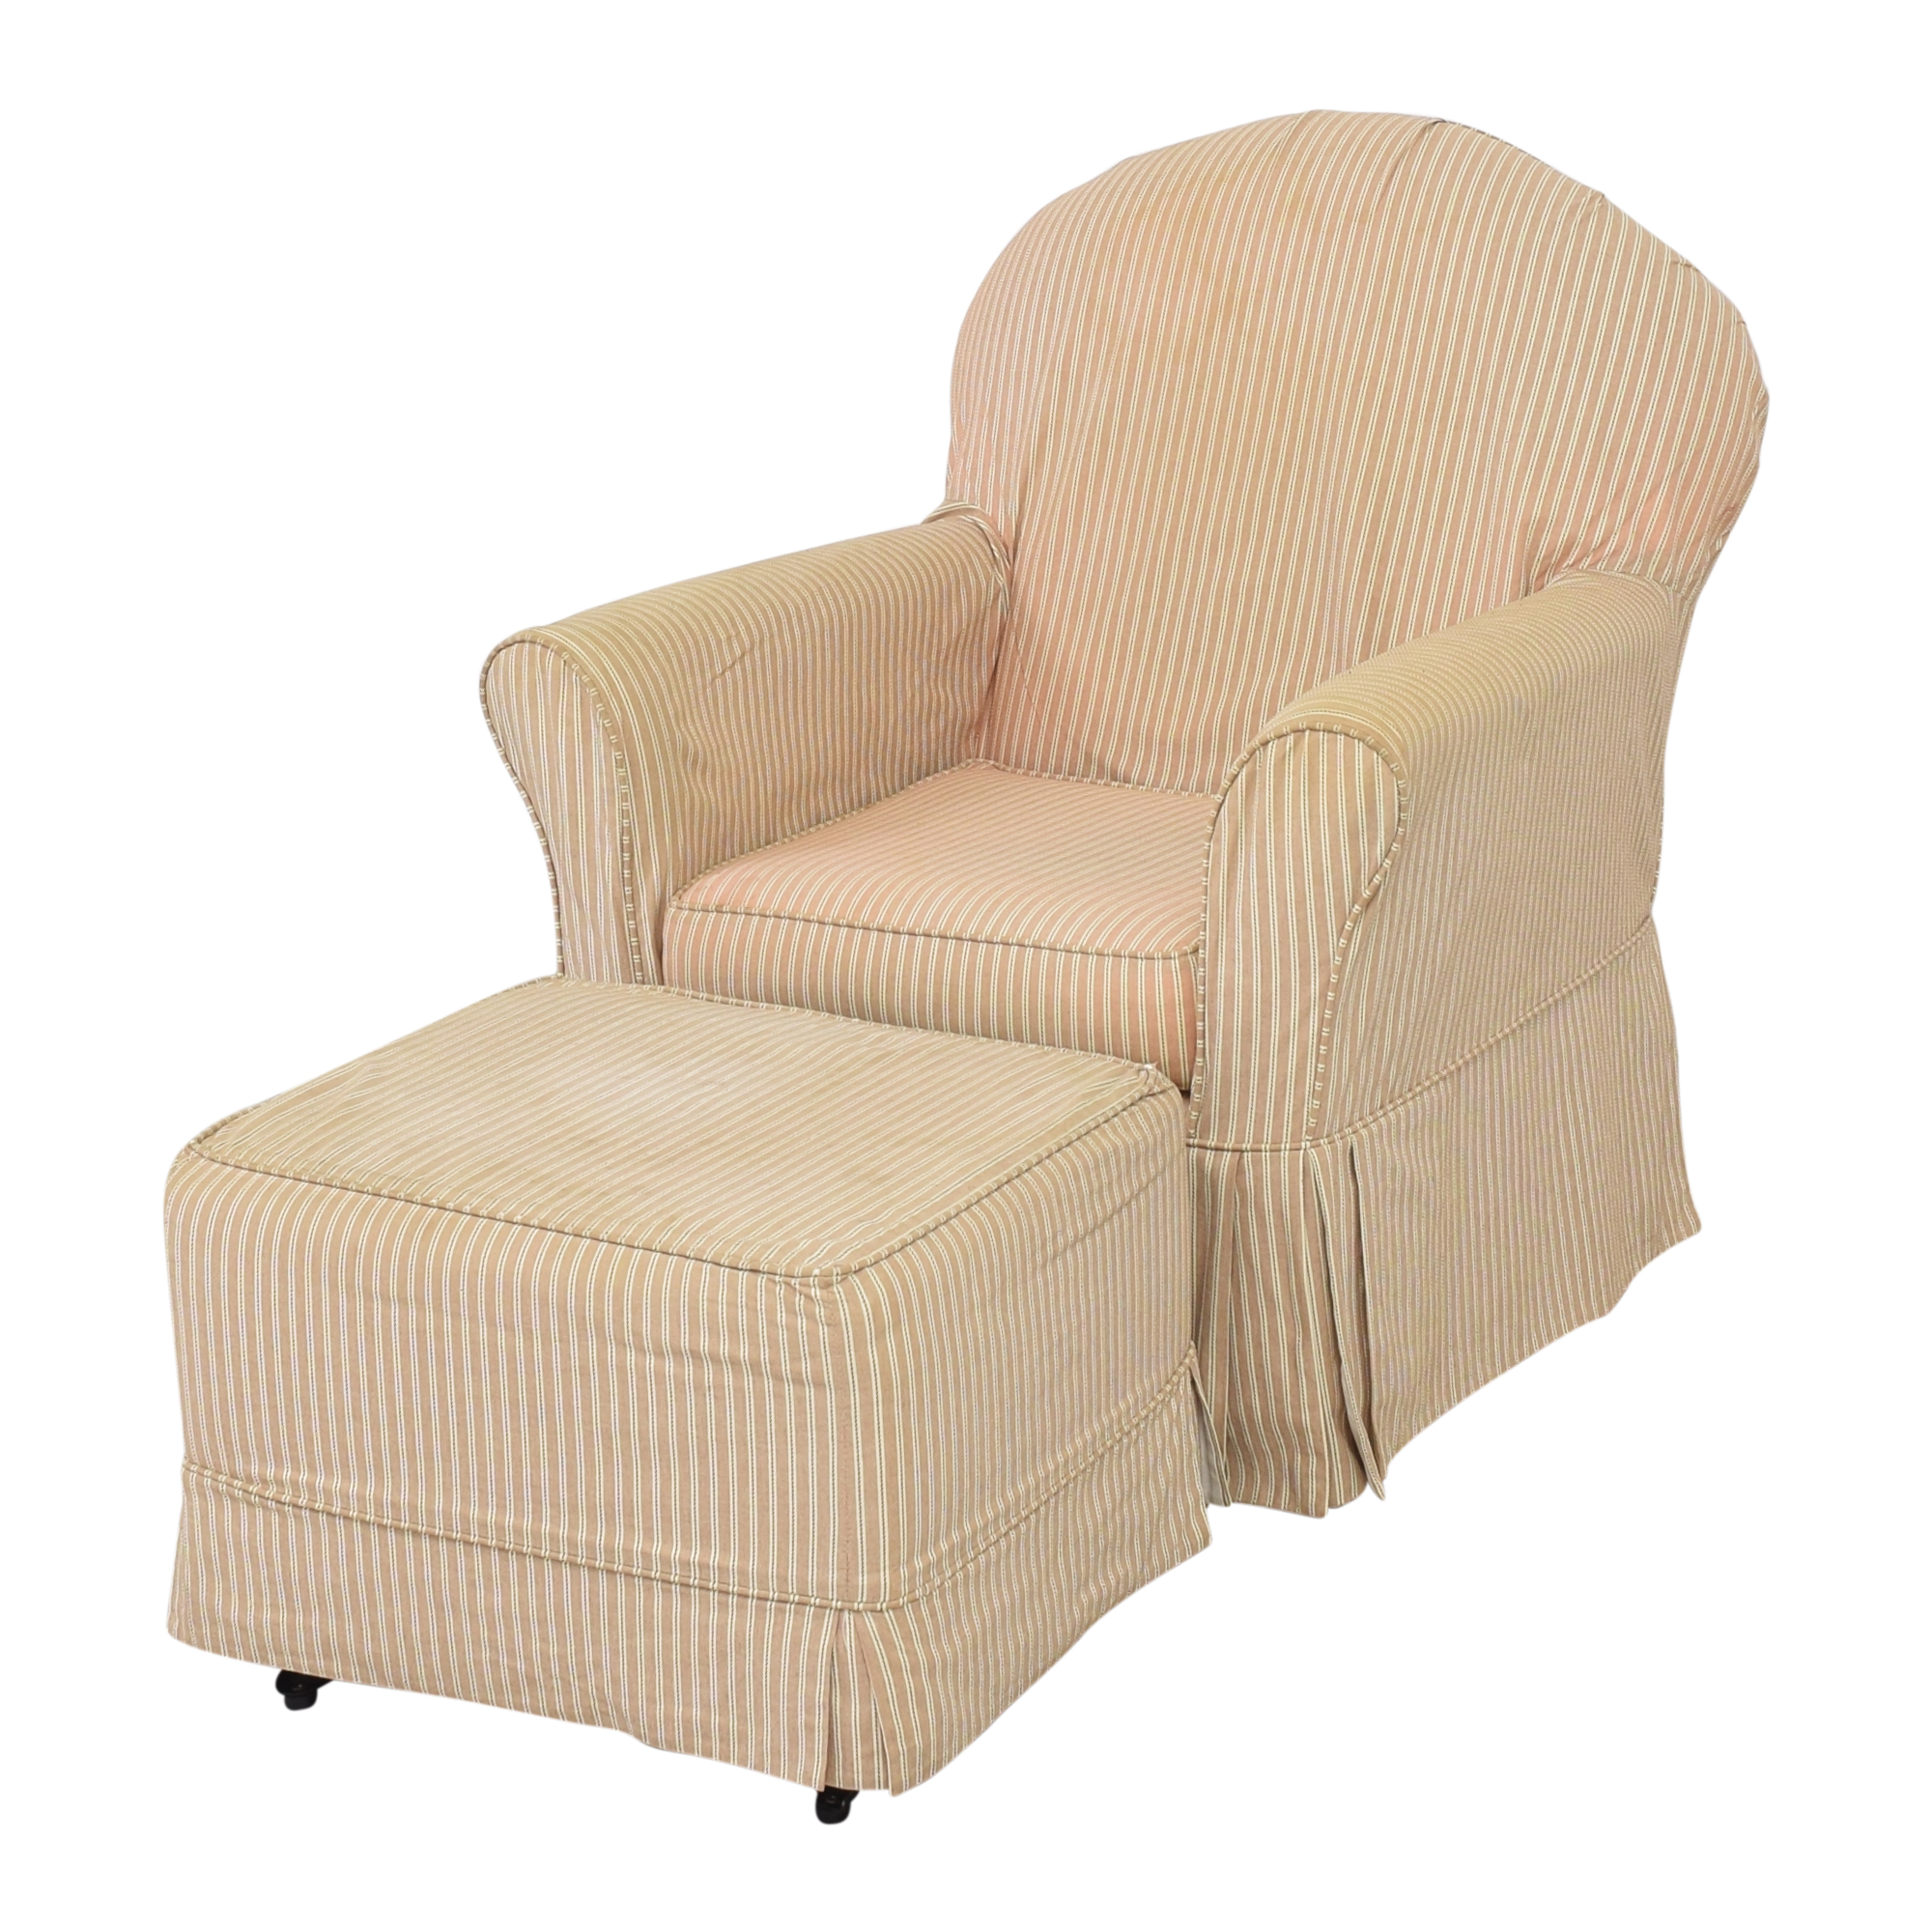 Little Castle Furniture Little Castle Furniture Slipcovered Royal Glider and Ottoman second hand